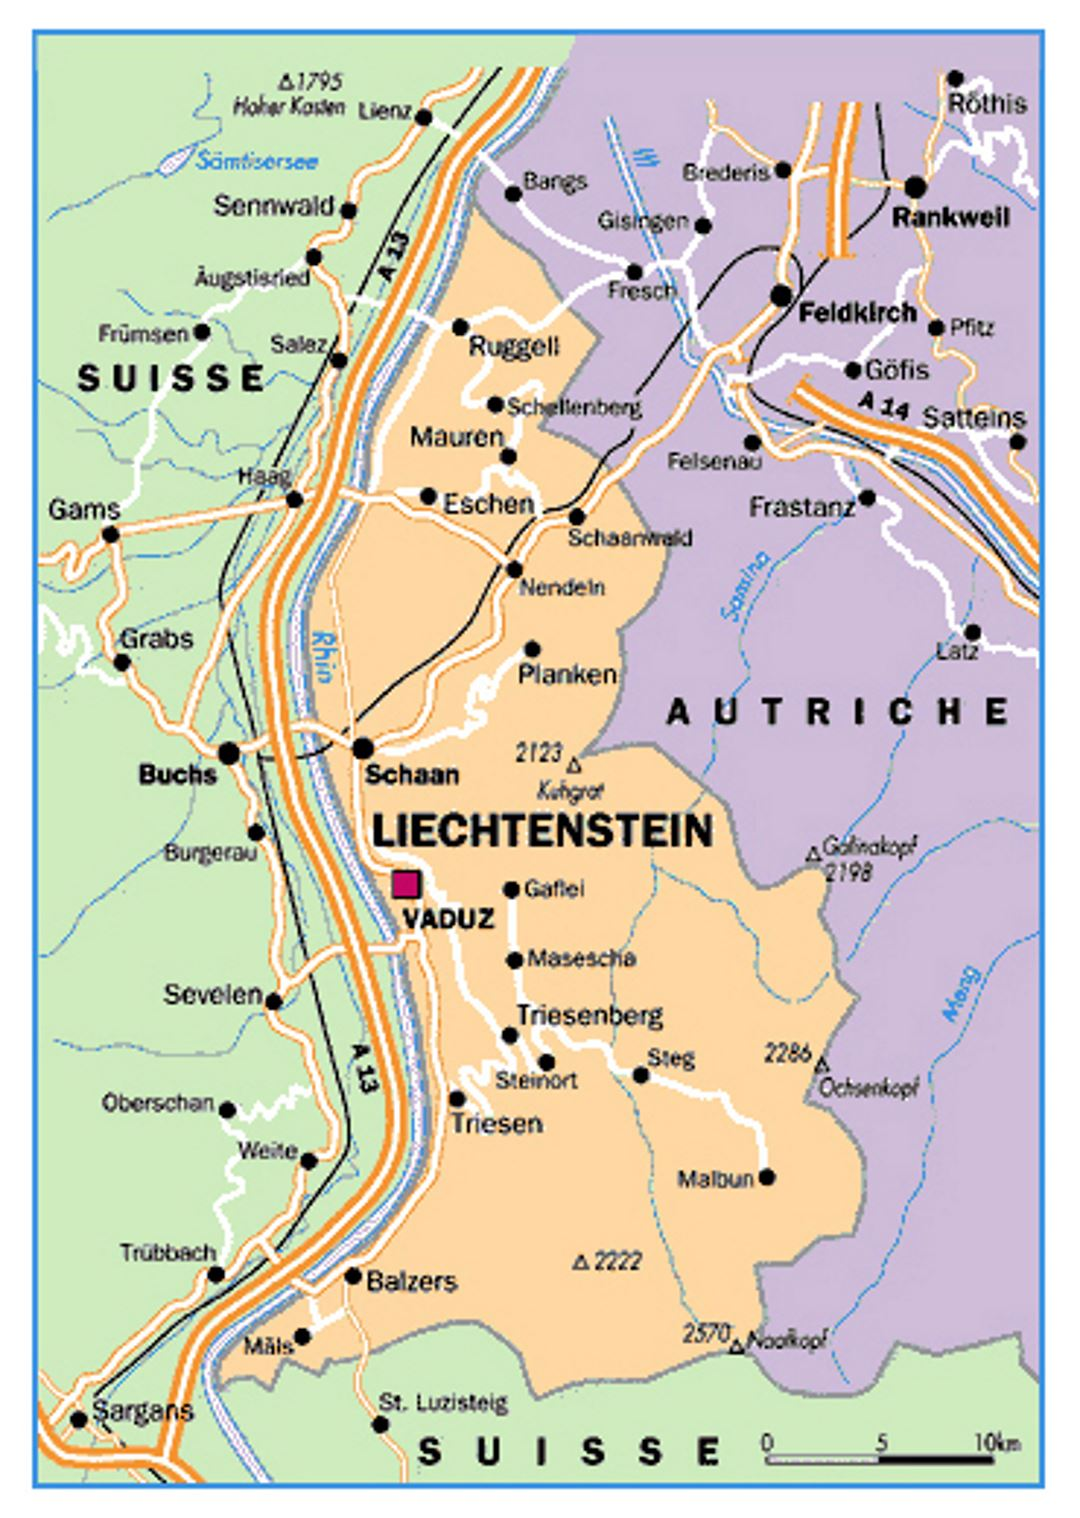 Small Political Map Of Liechtenstein Liechtenstein Europe - Liechtenstein map